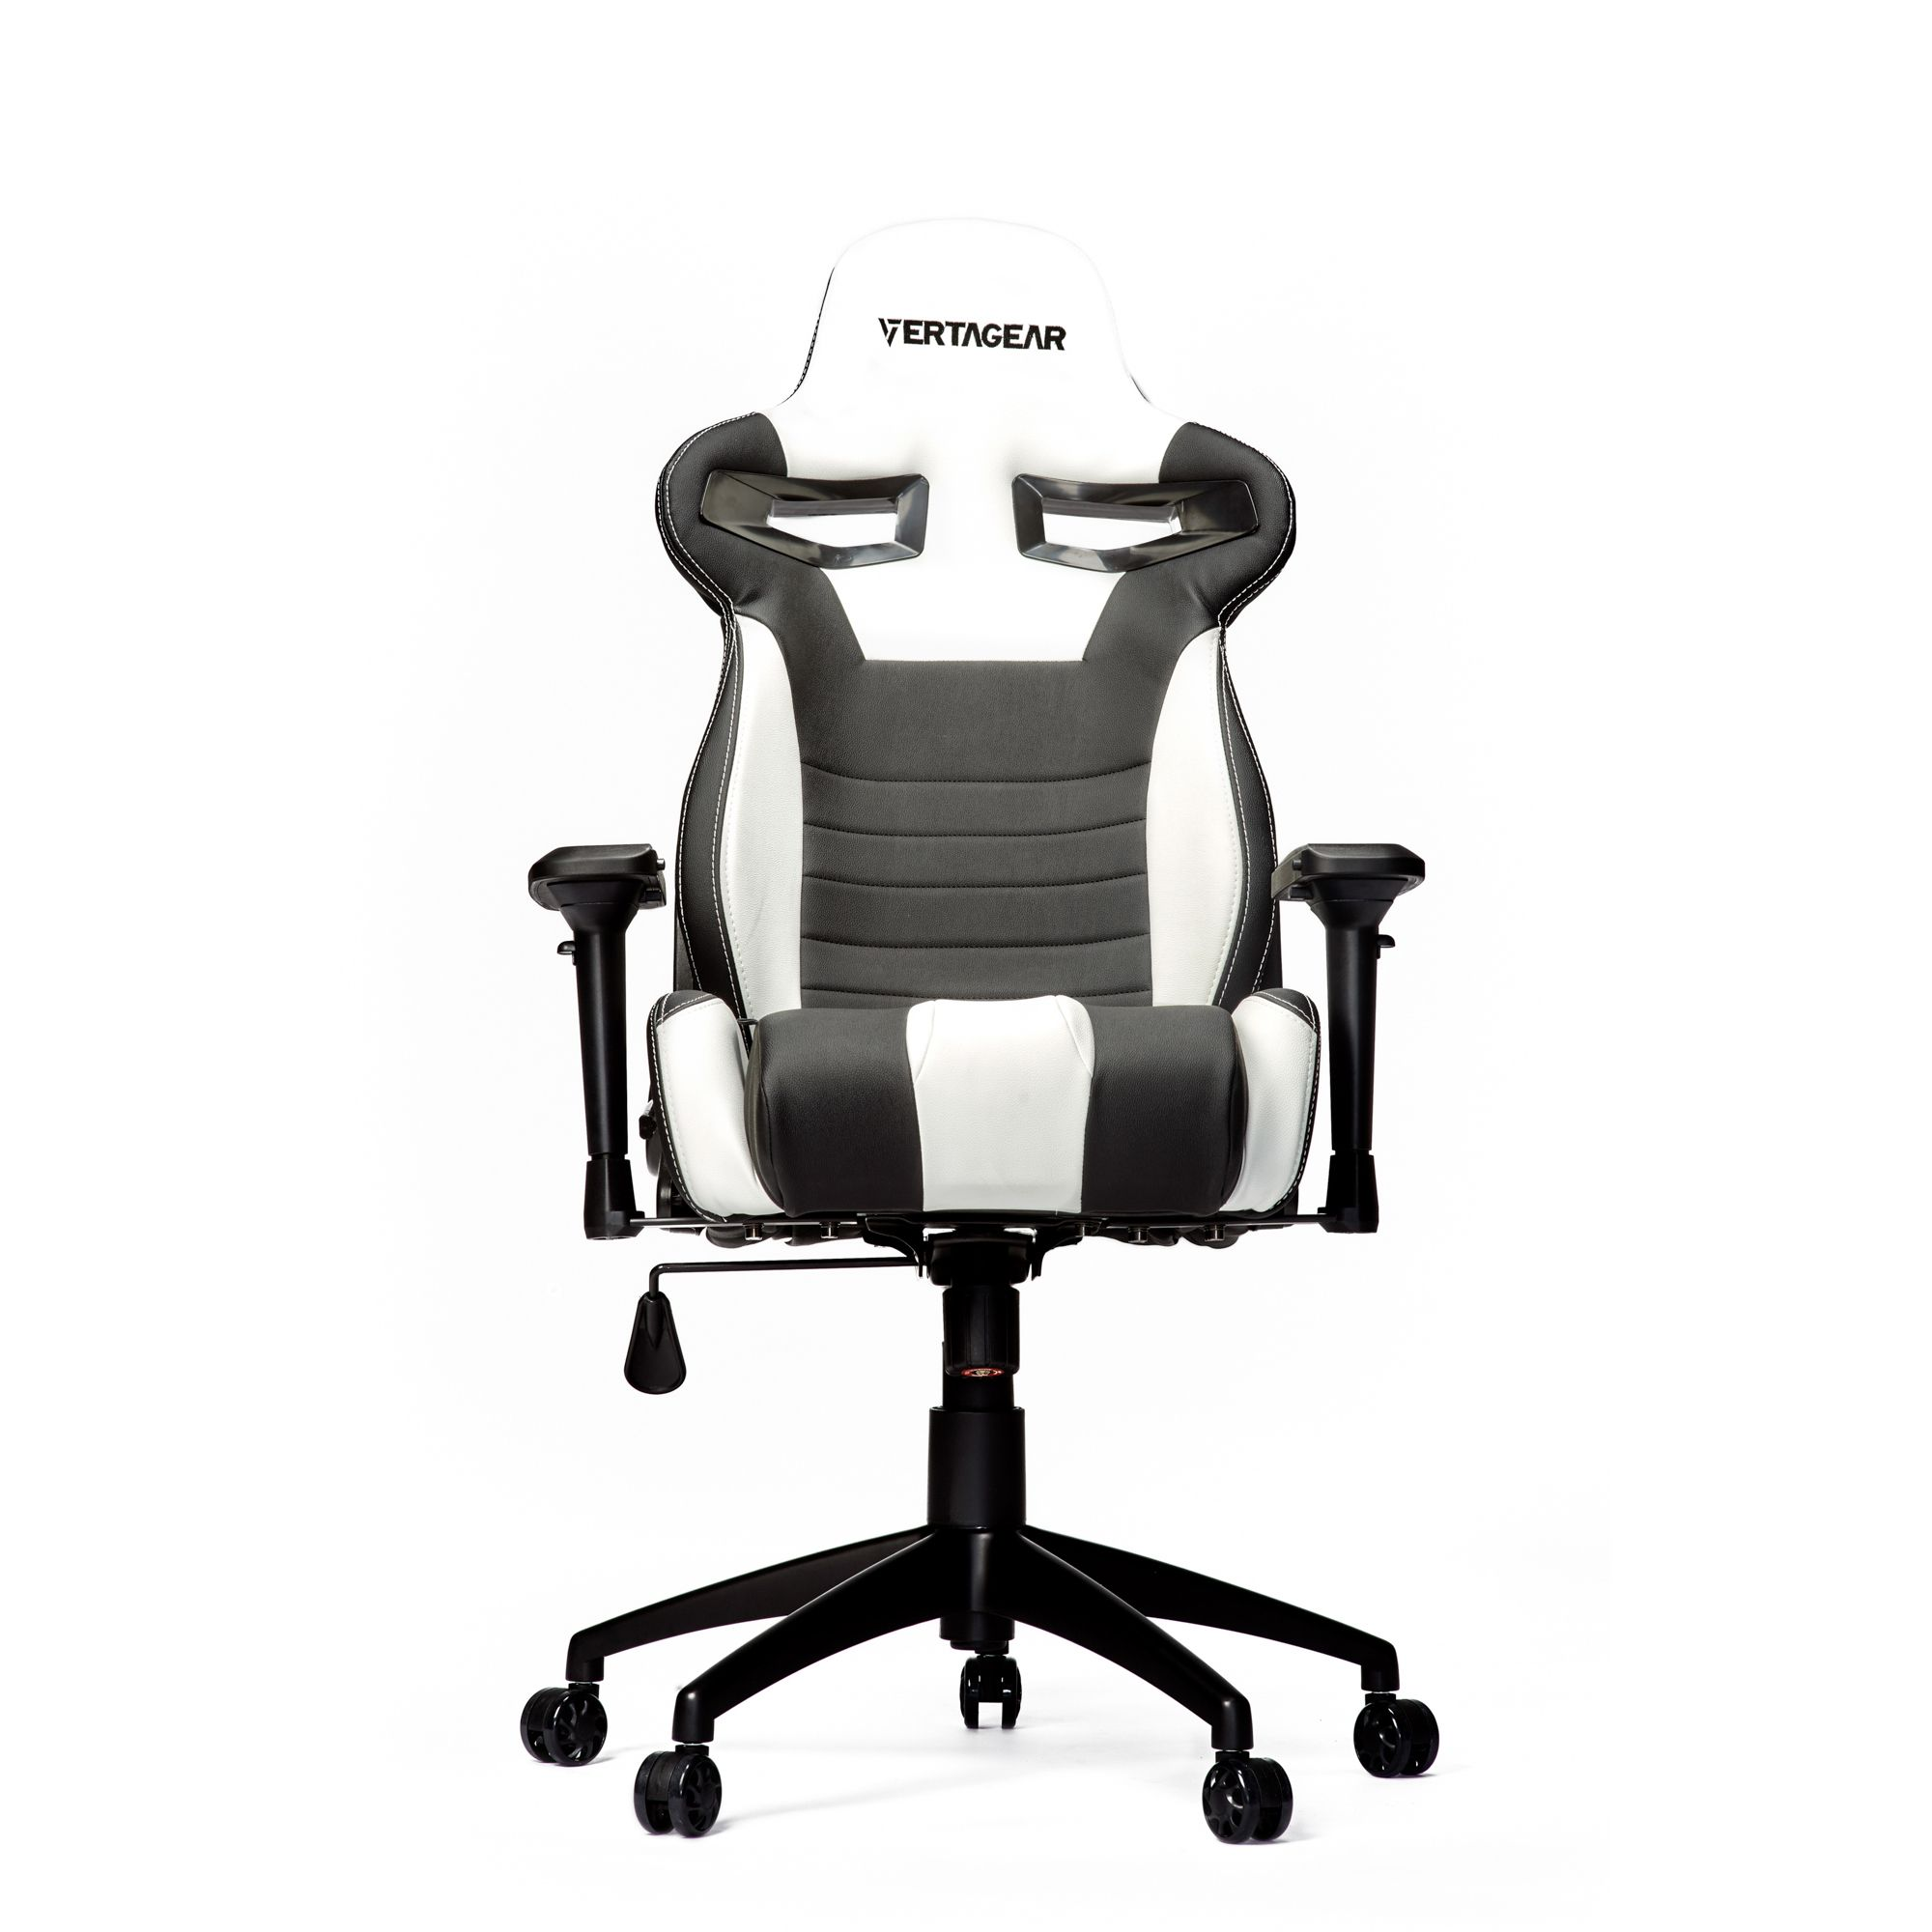 Vertagear Sl4000 White Chair Office Chair Fire Pit Table And Chairs